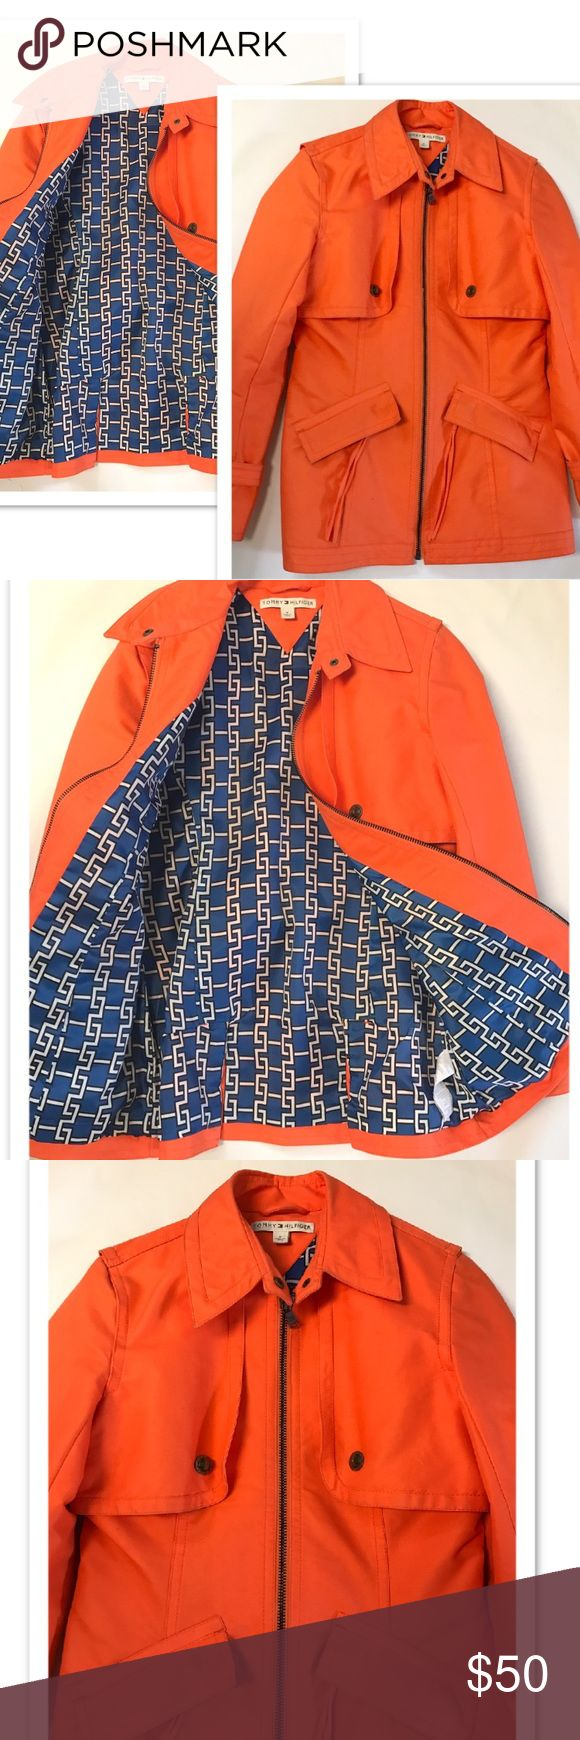 ❤️3 HOUR SALE Tommy Hilfiger Spring Jacket Size 8 Vibrant Orange Tommy Hilfiger Spring Jacket women's size 8. Blue and White print lined. Full zip front. Pristine condition! Great for spring summer any season ! Classy elegant trendy stylish. Tommy Hilfiger Jackets & Coats